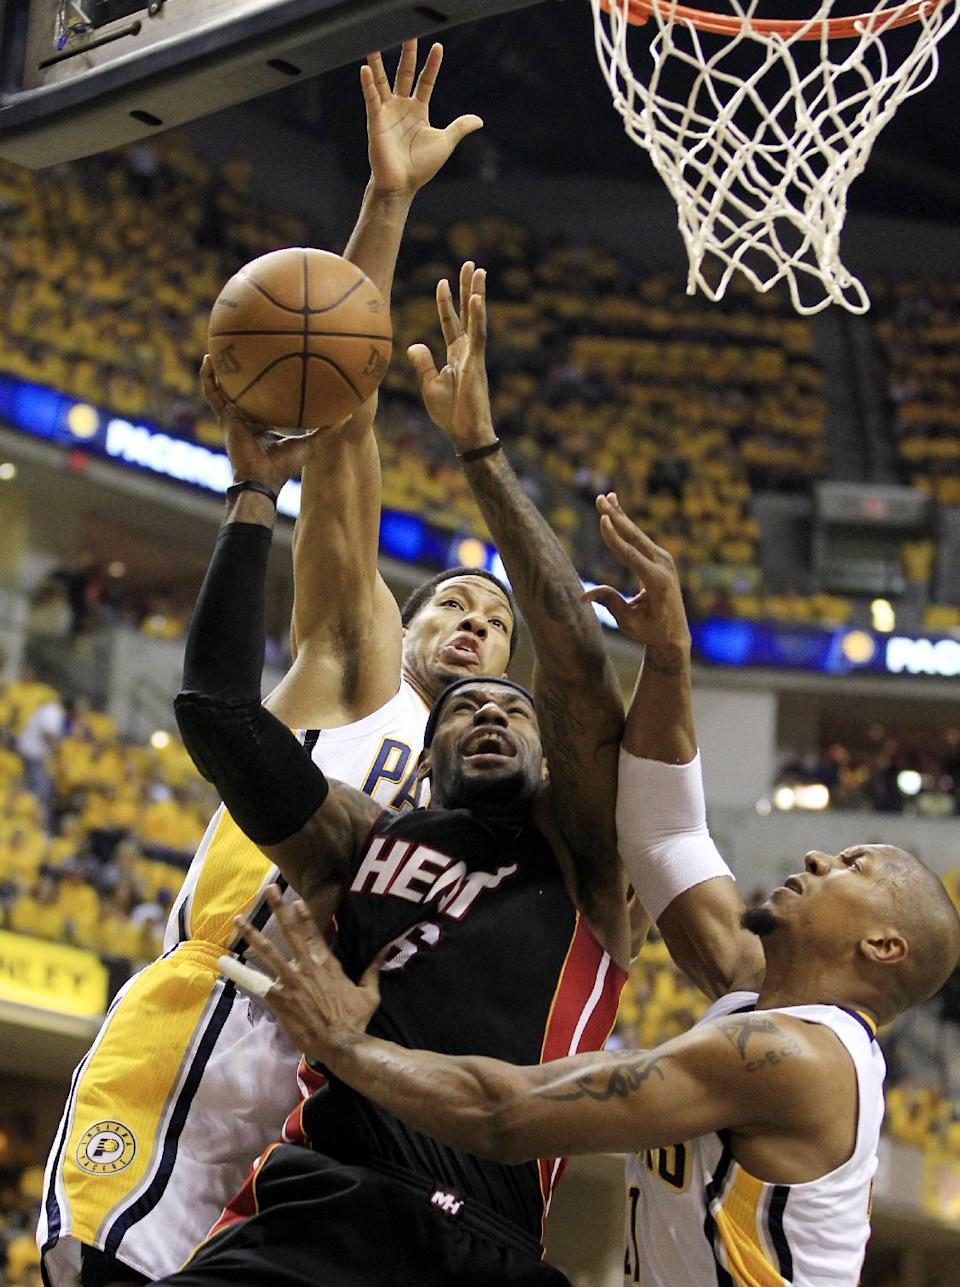 Miami Heat's LeBron James, center, shoots against Indiana Pacers' Danny Granger, left, and David West, right, during the first half of Game 6 of their NBA basketball Eastern Conference semifinal playoff series, Thursday, May 24, 2012, in Indianapolis. (AP Photo/Darron Cummings)